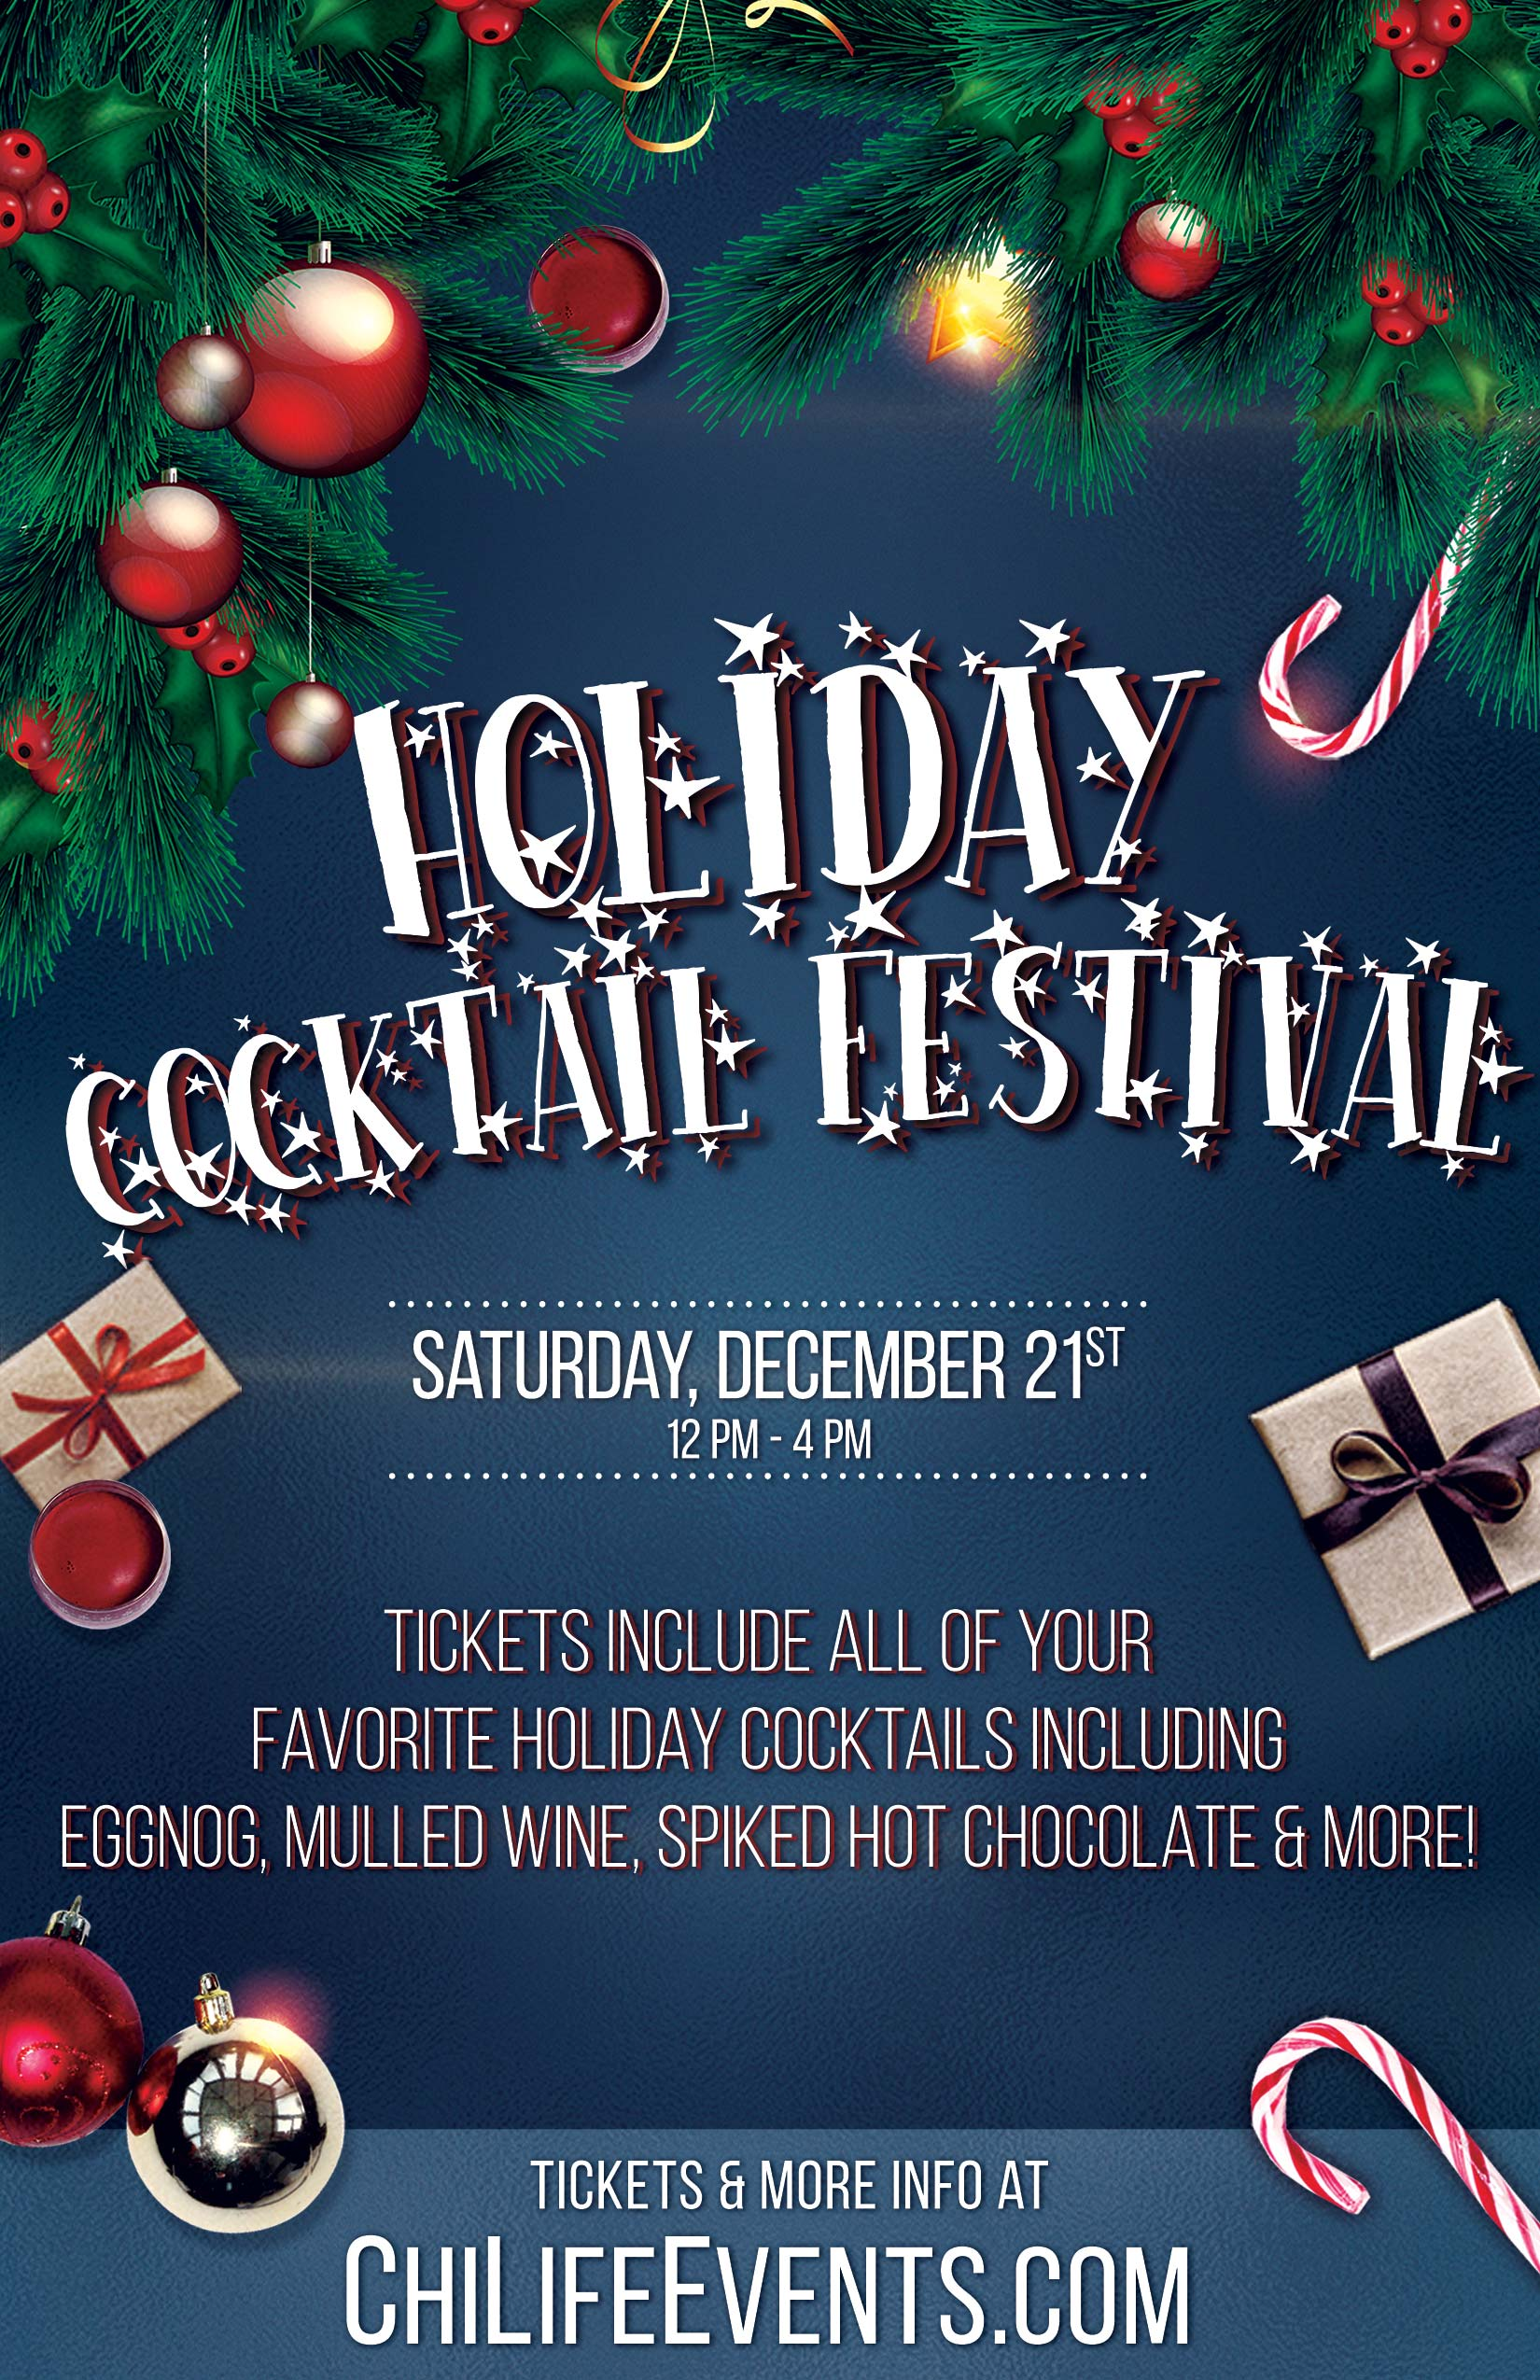 Holiday Cocktail Tasting Festival - Tickets include all of your favorite holiday drinks including: Eggnog, Mulled Wine, Spiked Hot Chocolate and MORE!